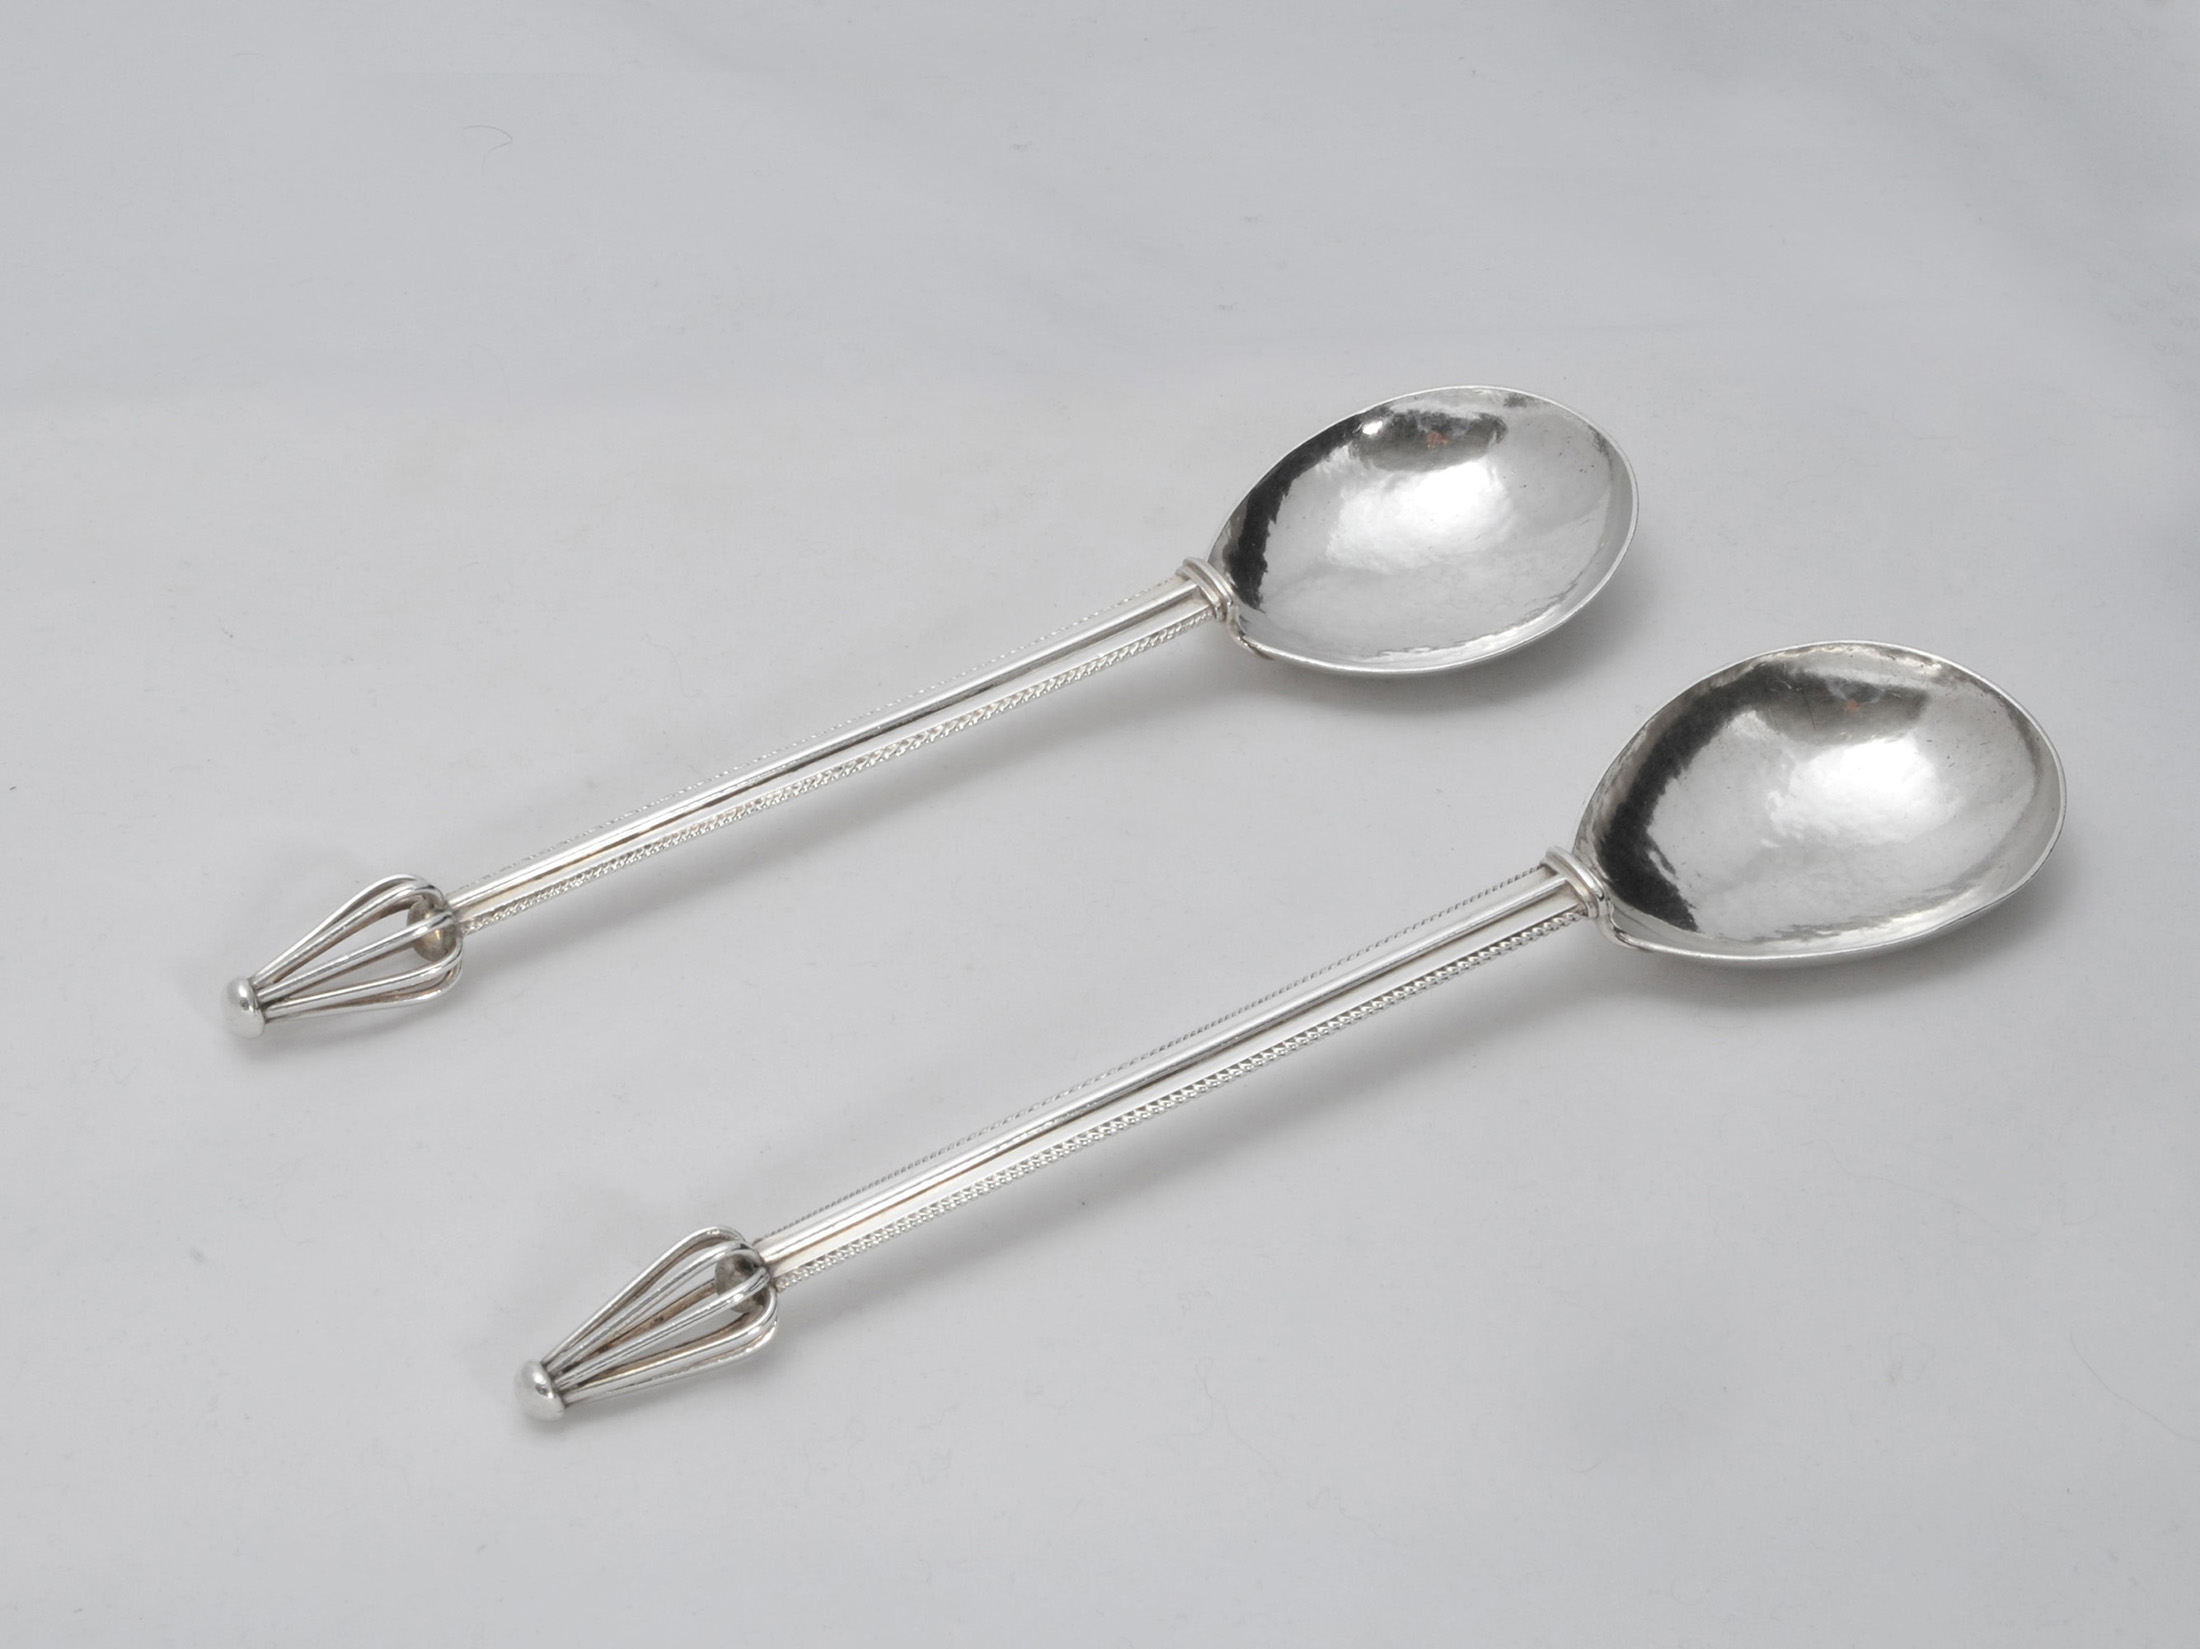 Artificers Guild Edward Spencer desert spoons front